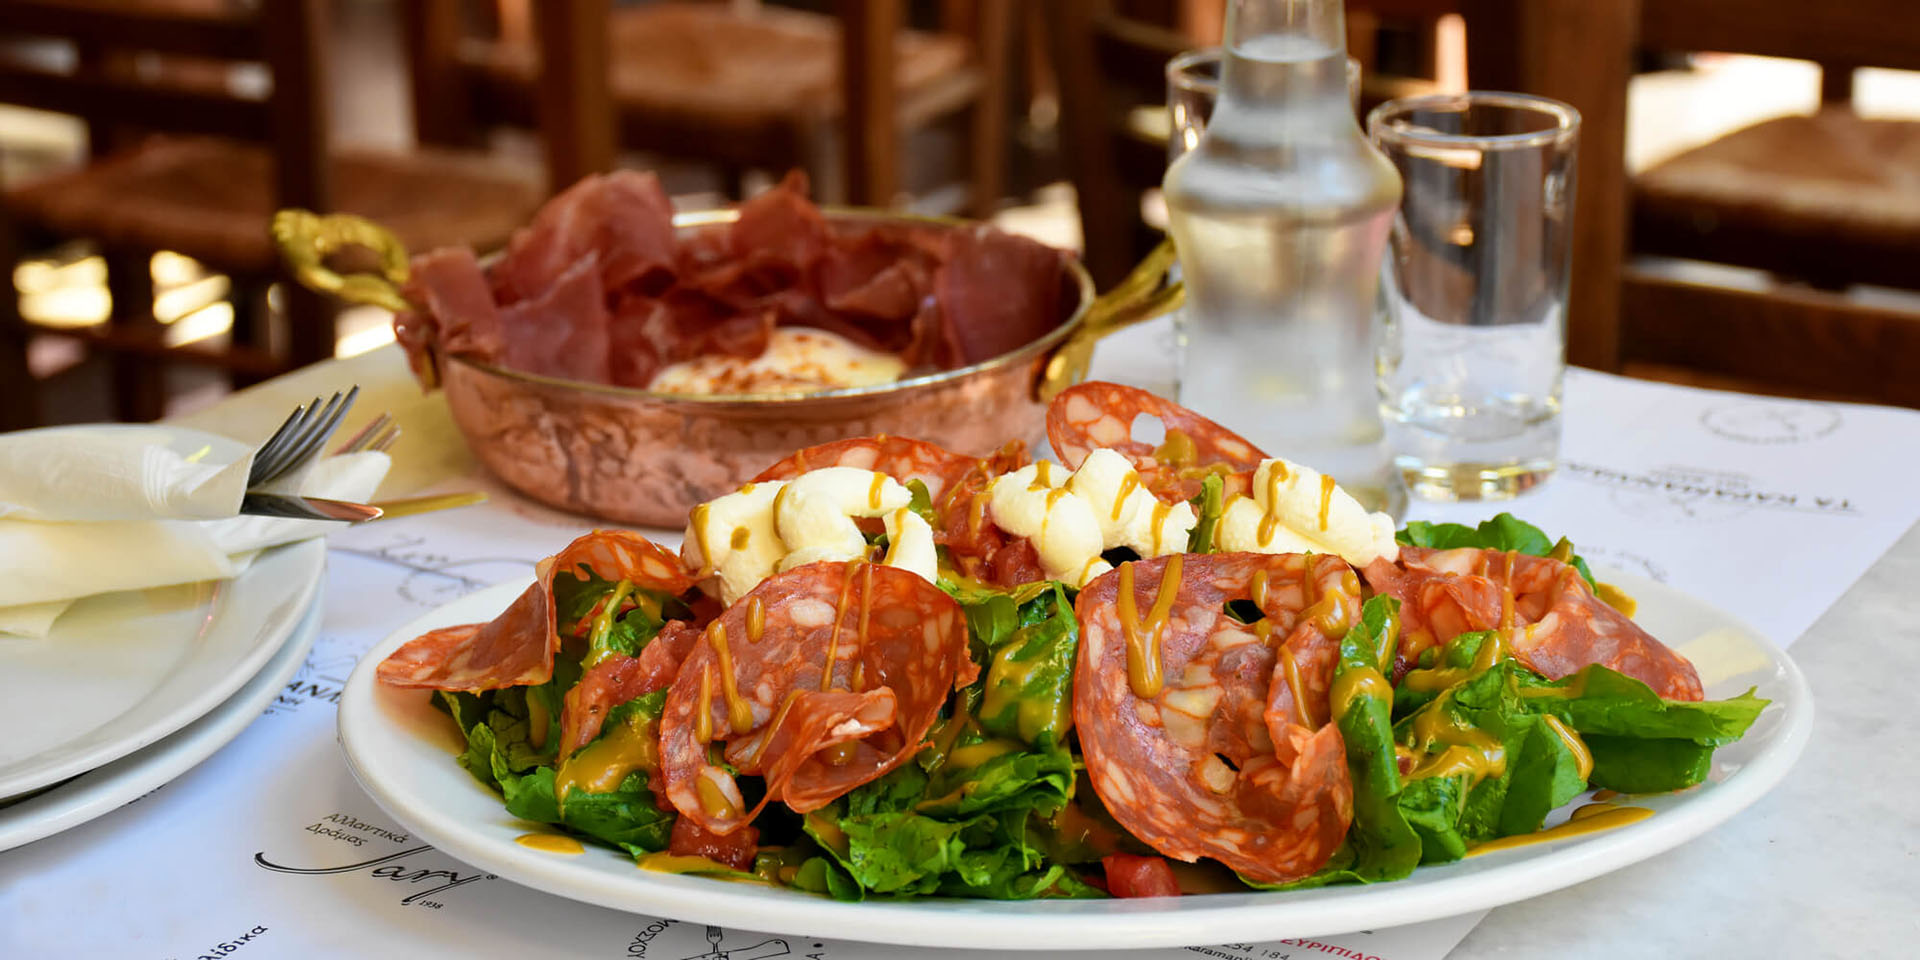 The Best Place for Meat food in Athens